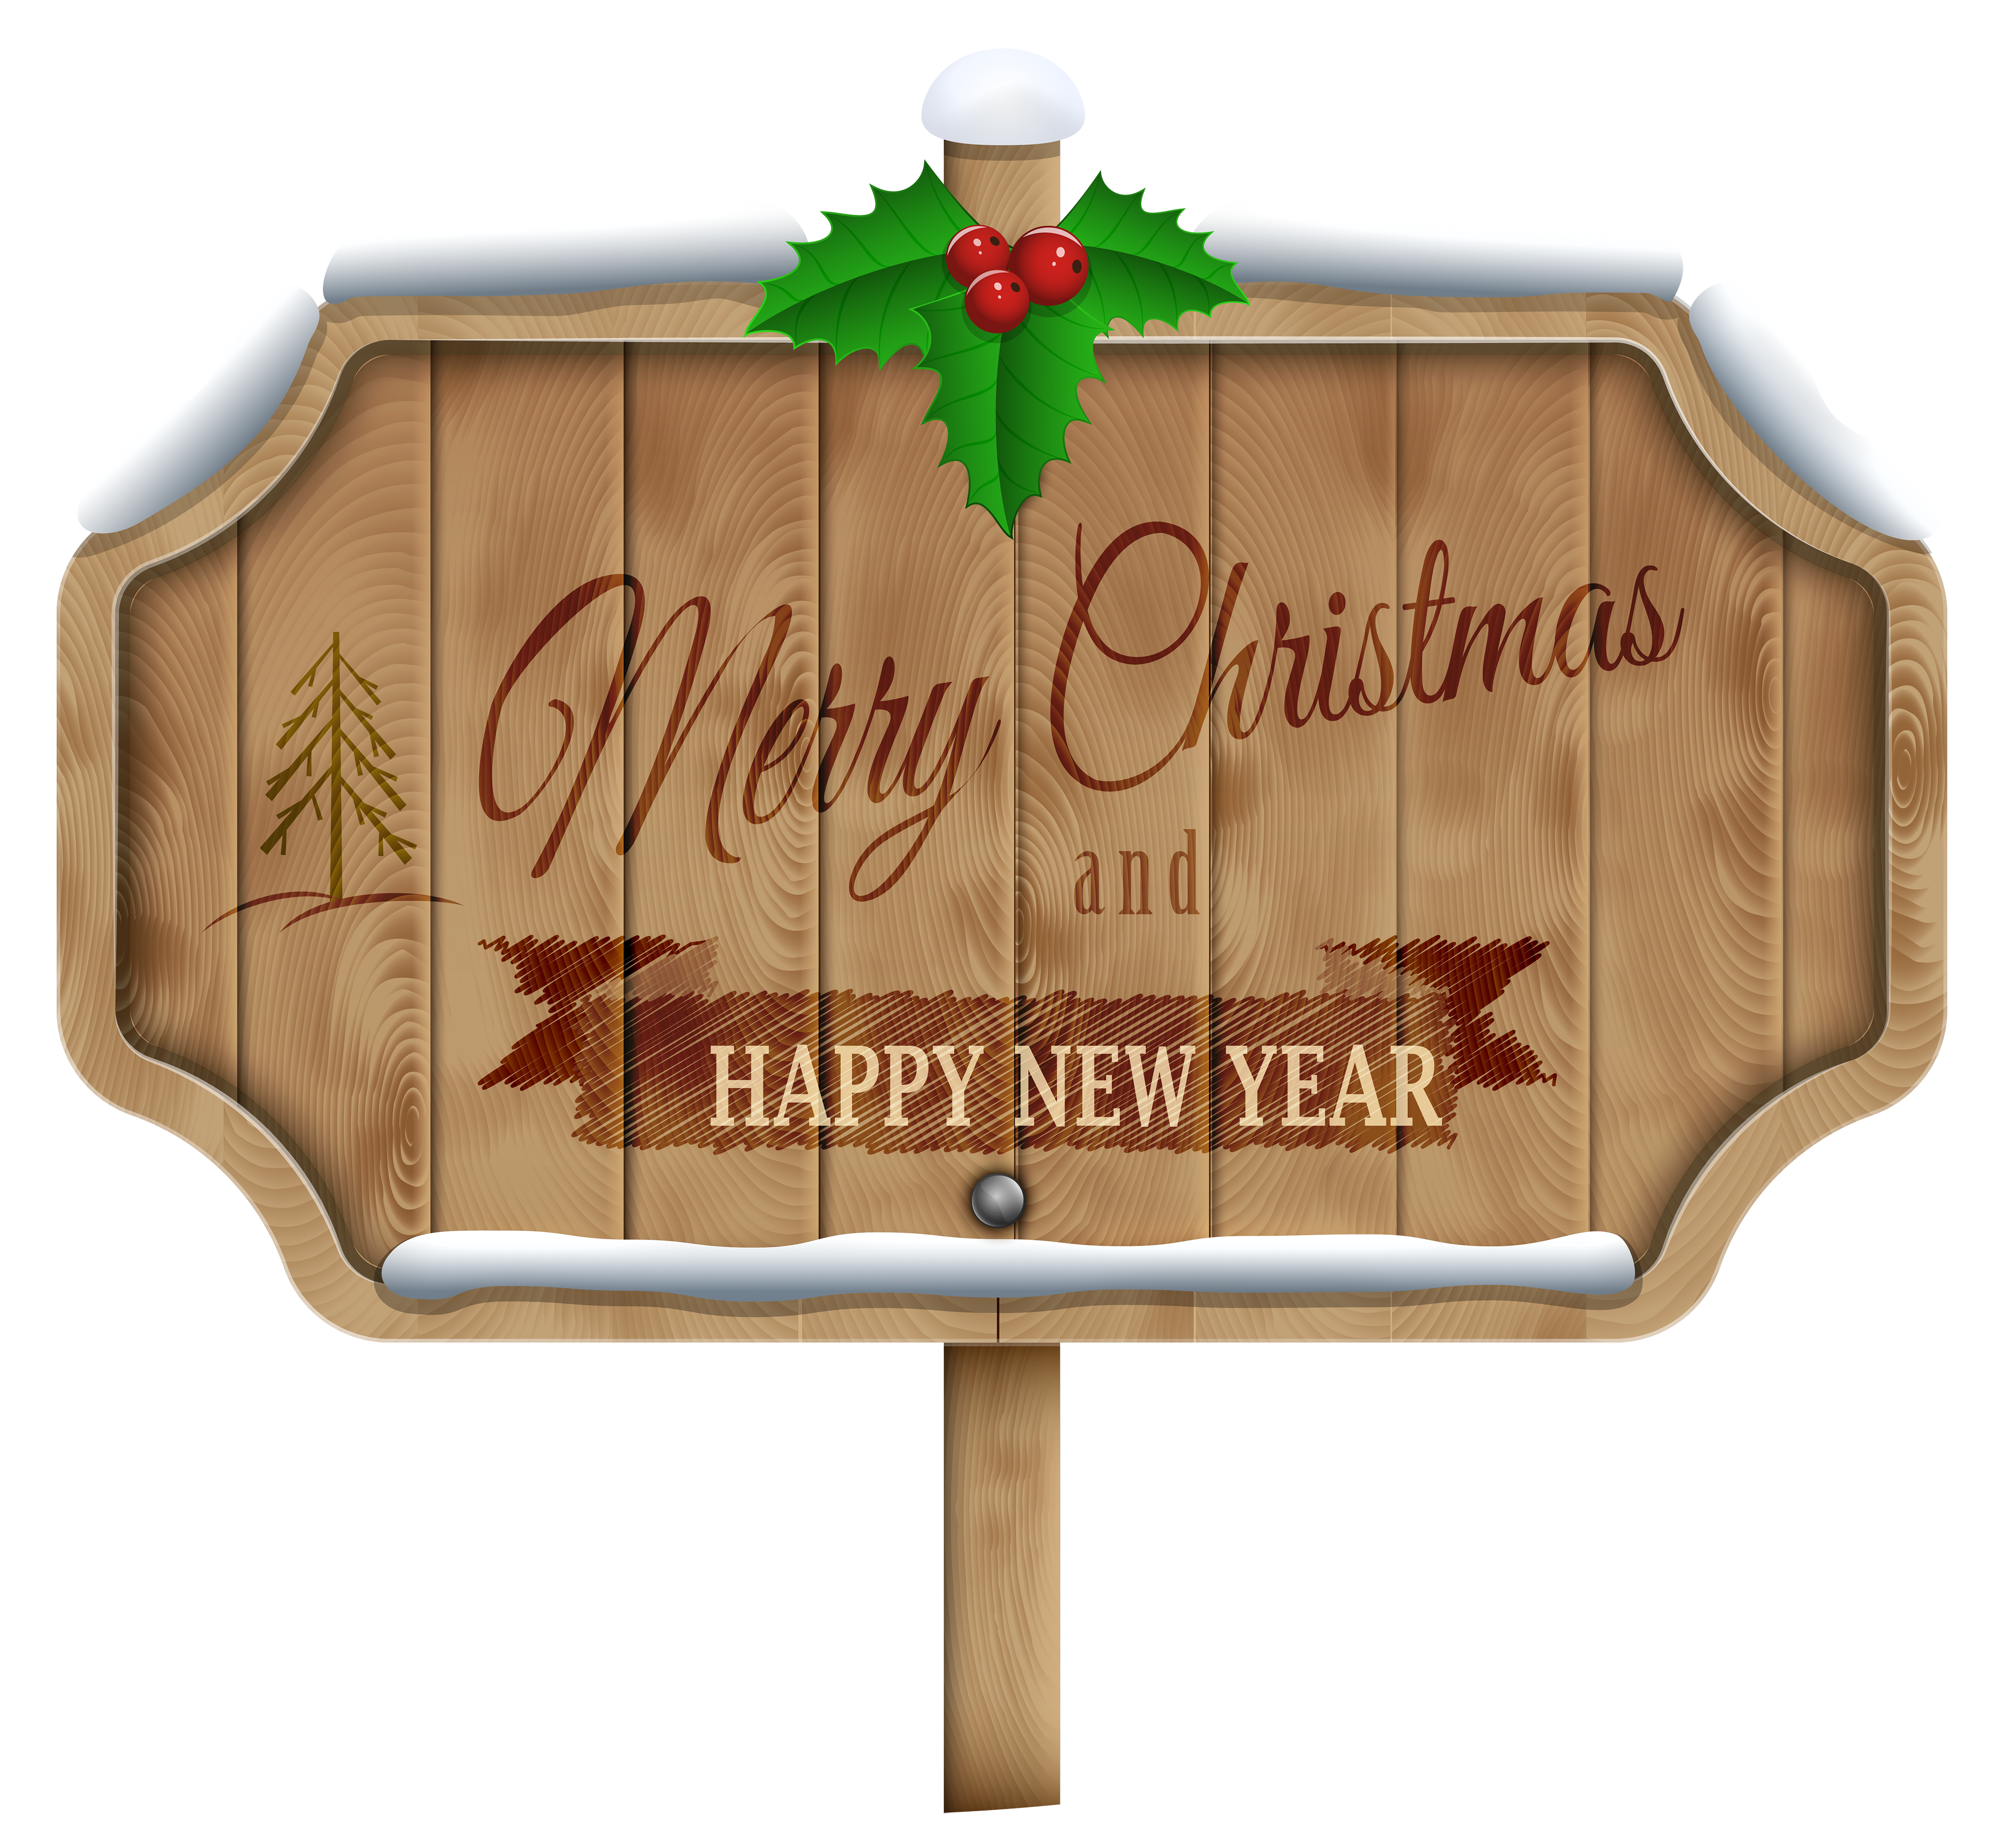 Christmas sayings clipart vector transparent library Christmas Wooden Sign Transparent PNG Clip Art Image | Gallery ... vector transparent library